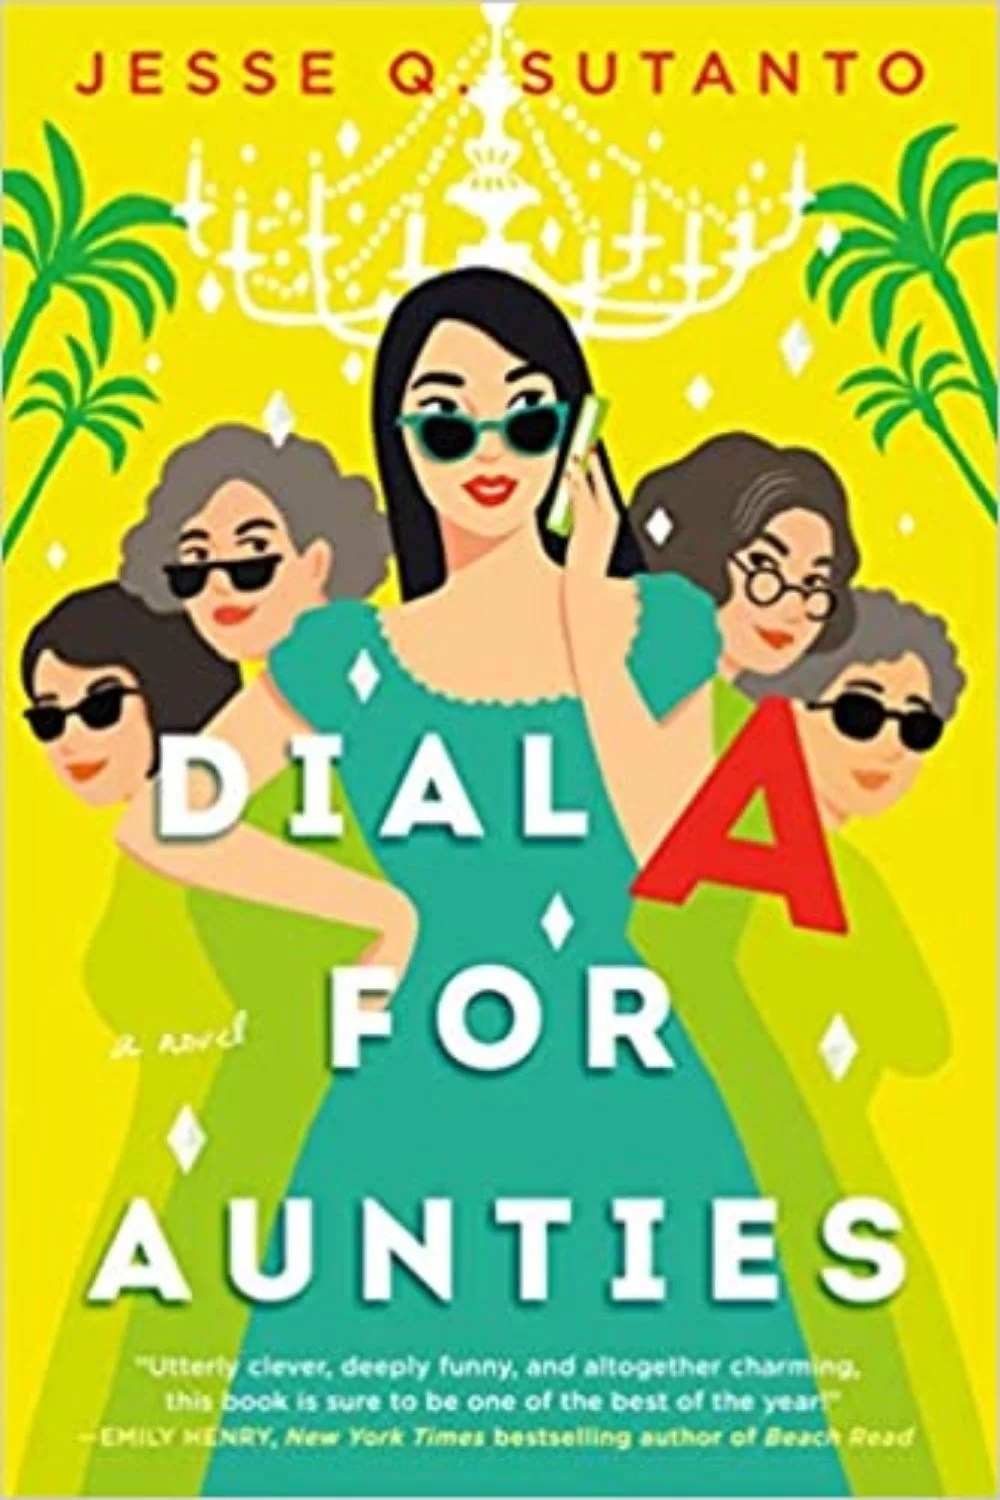 Dial A for Aunties: By Jesse Q. Sutanto Is a Comical and Heartfelt Rom-com Debut Novel